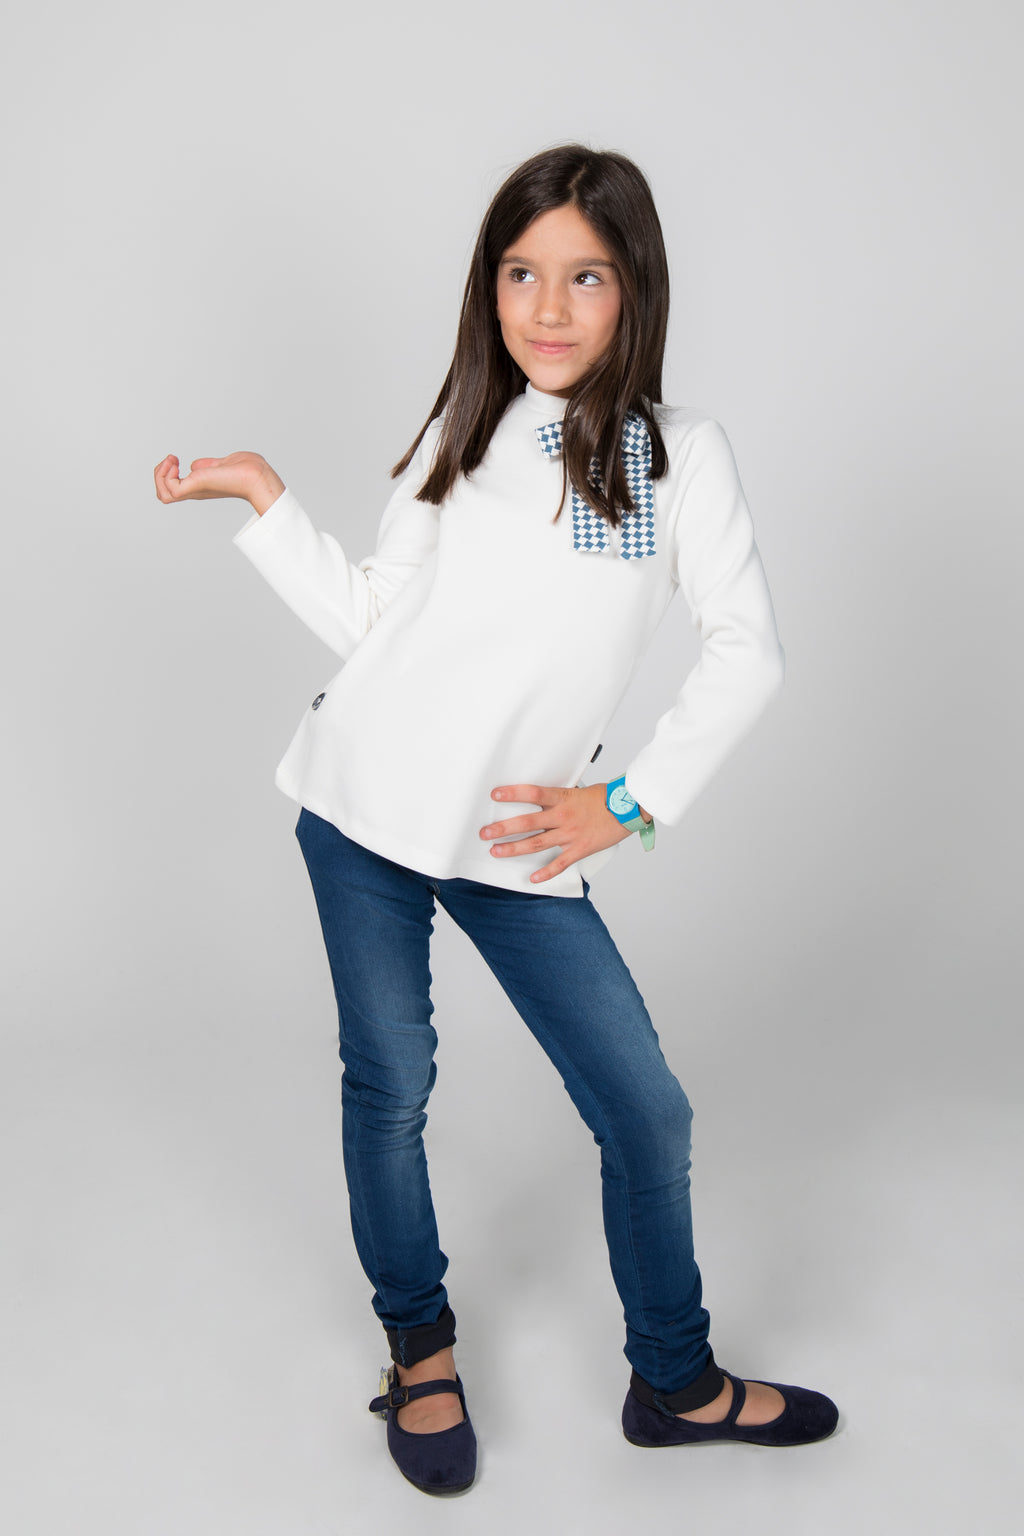 CAMISA CNA 831 Blanca con lazo / GIRL'S SHIRT CNA 831 White with tie